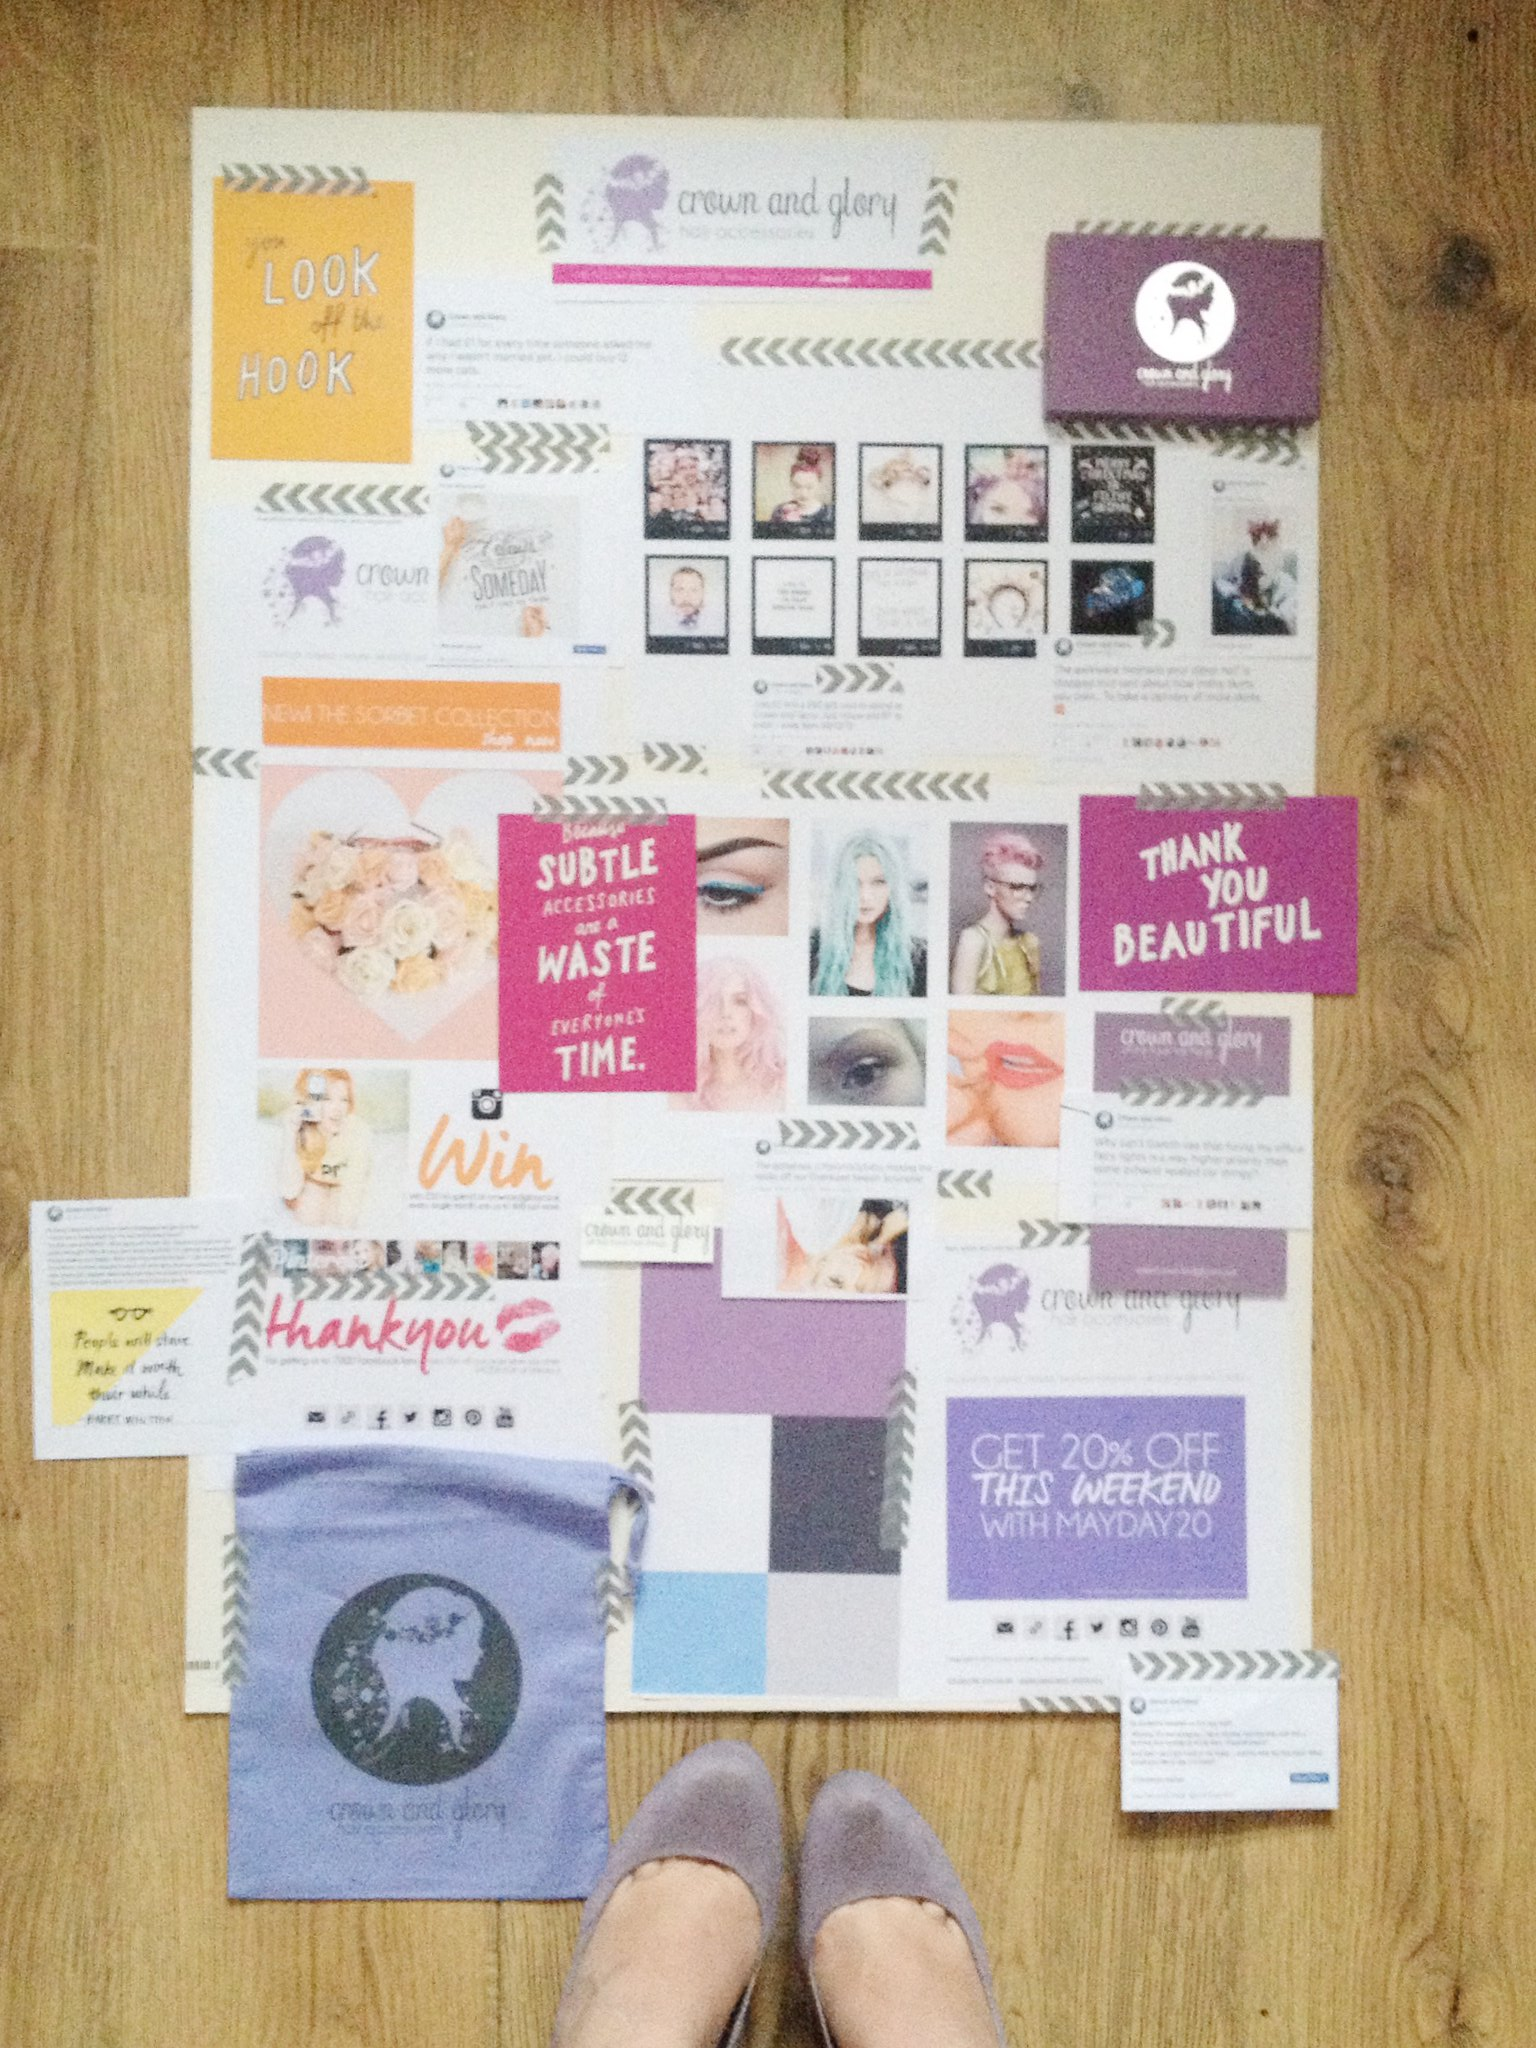 crown and glory the blogcademy brand audit